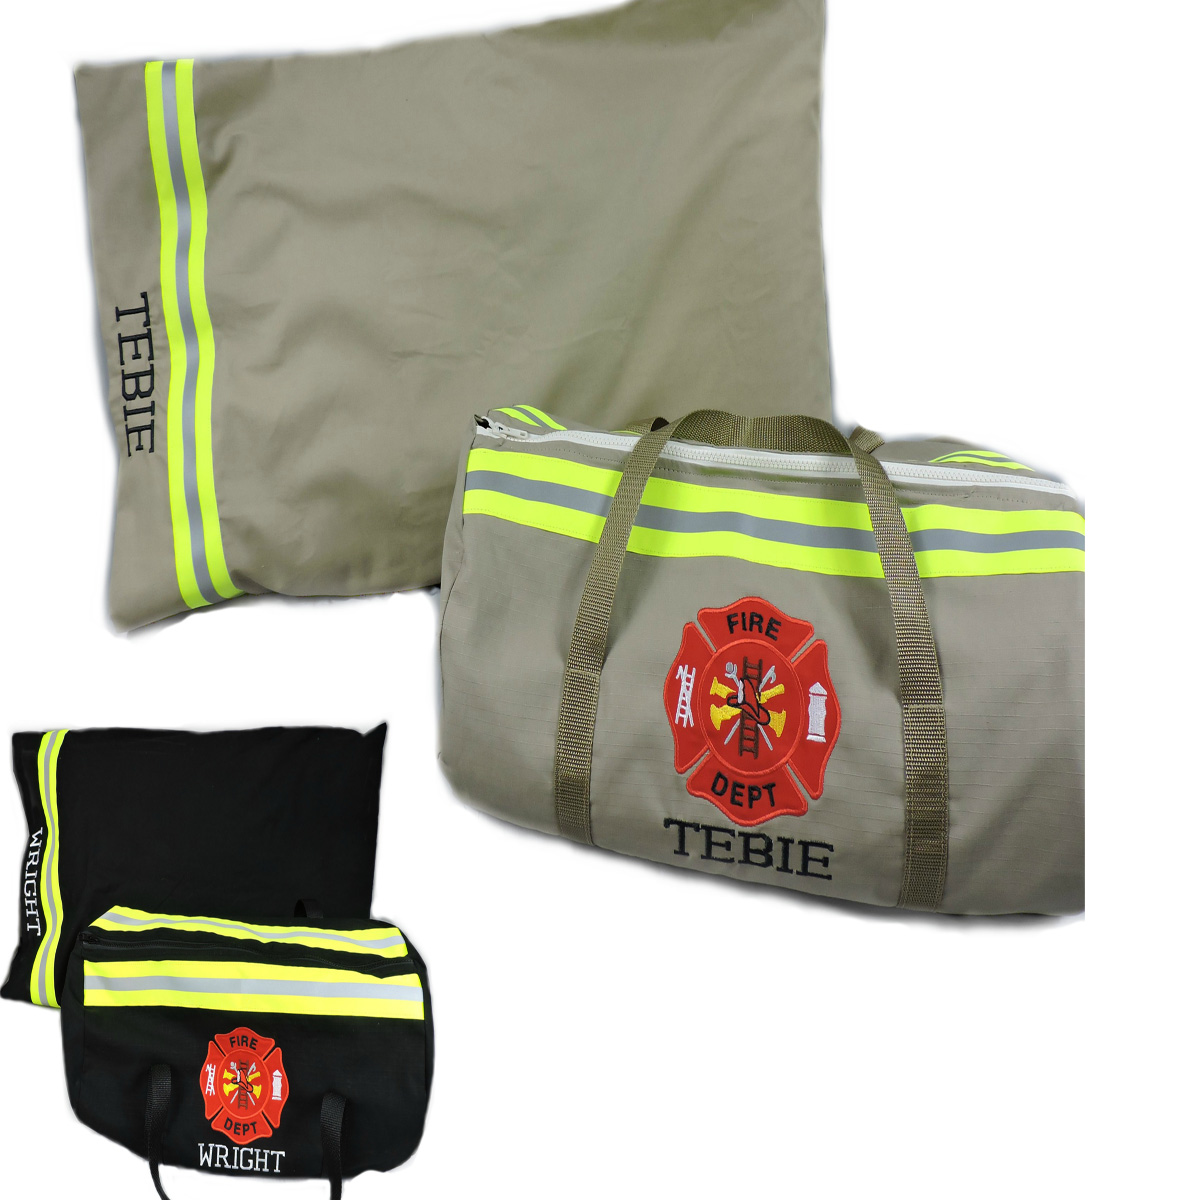 Firefighter-gift-set-duffel-bag-pillowcase